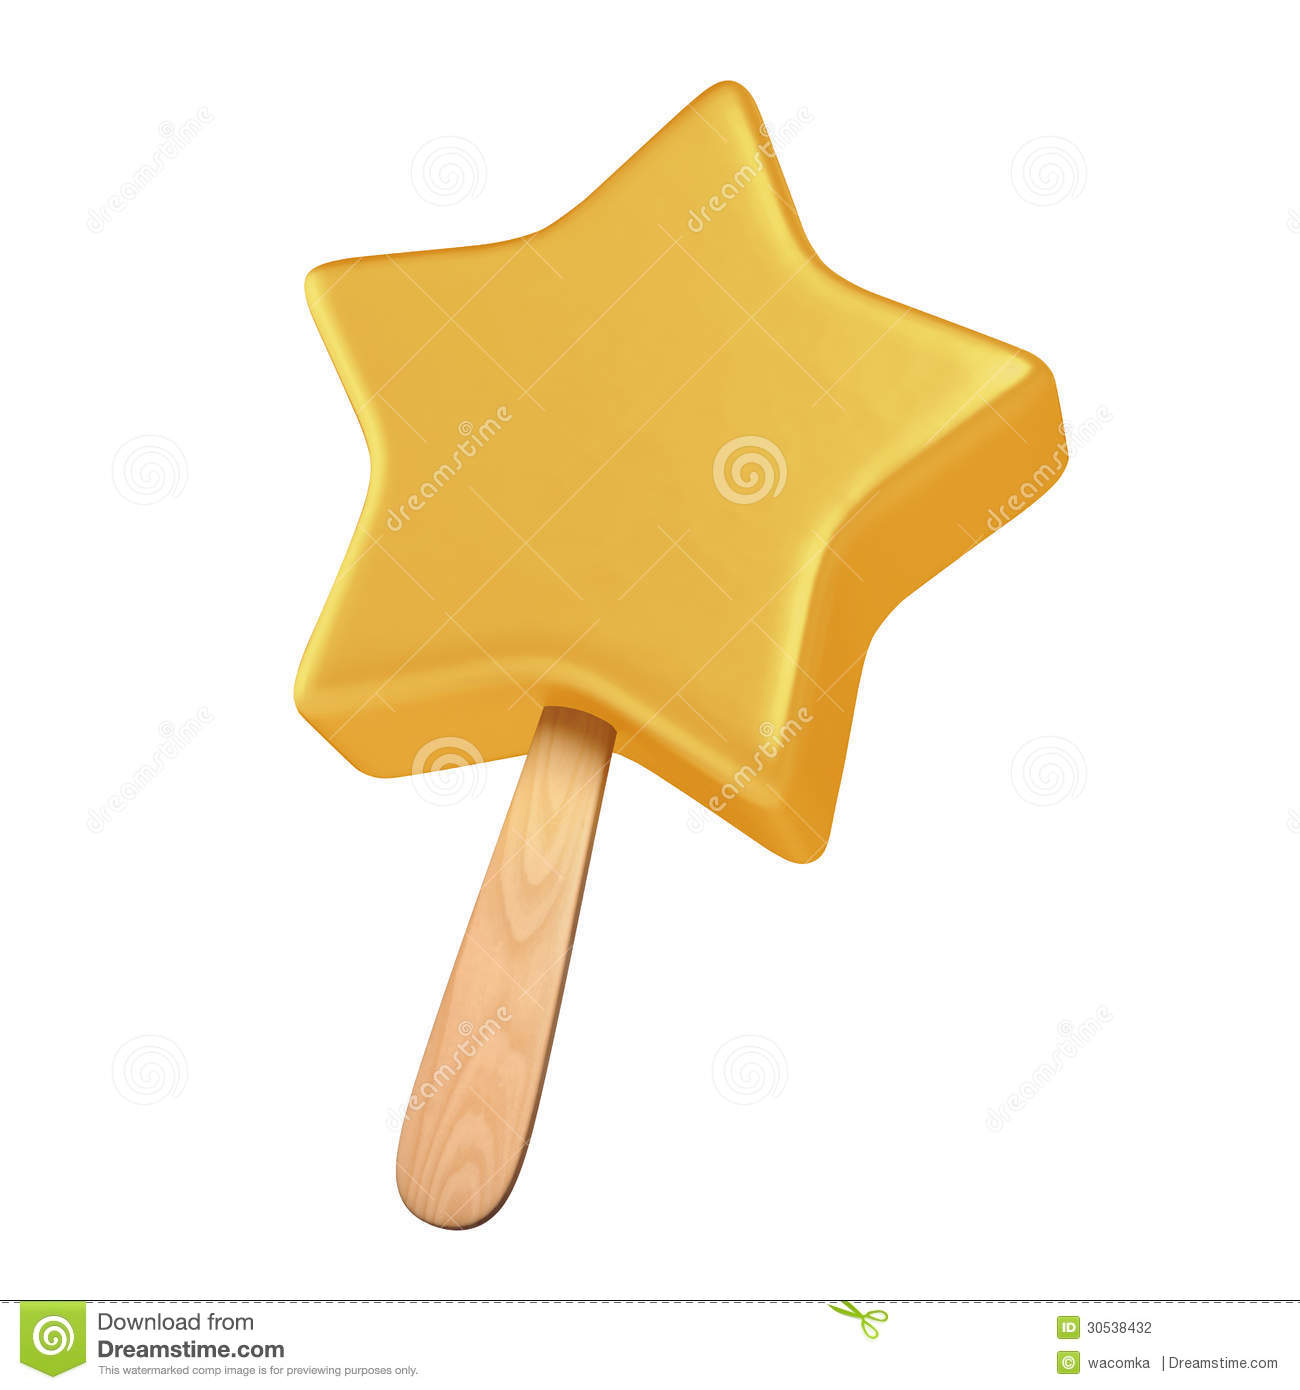 Yellow Star Shaped Ice Cream Stock Photography - Image: 30538432